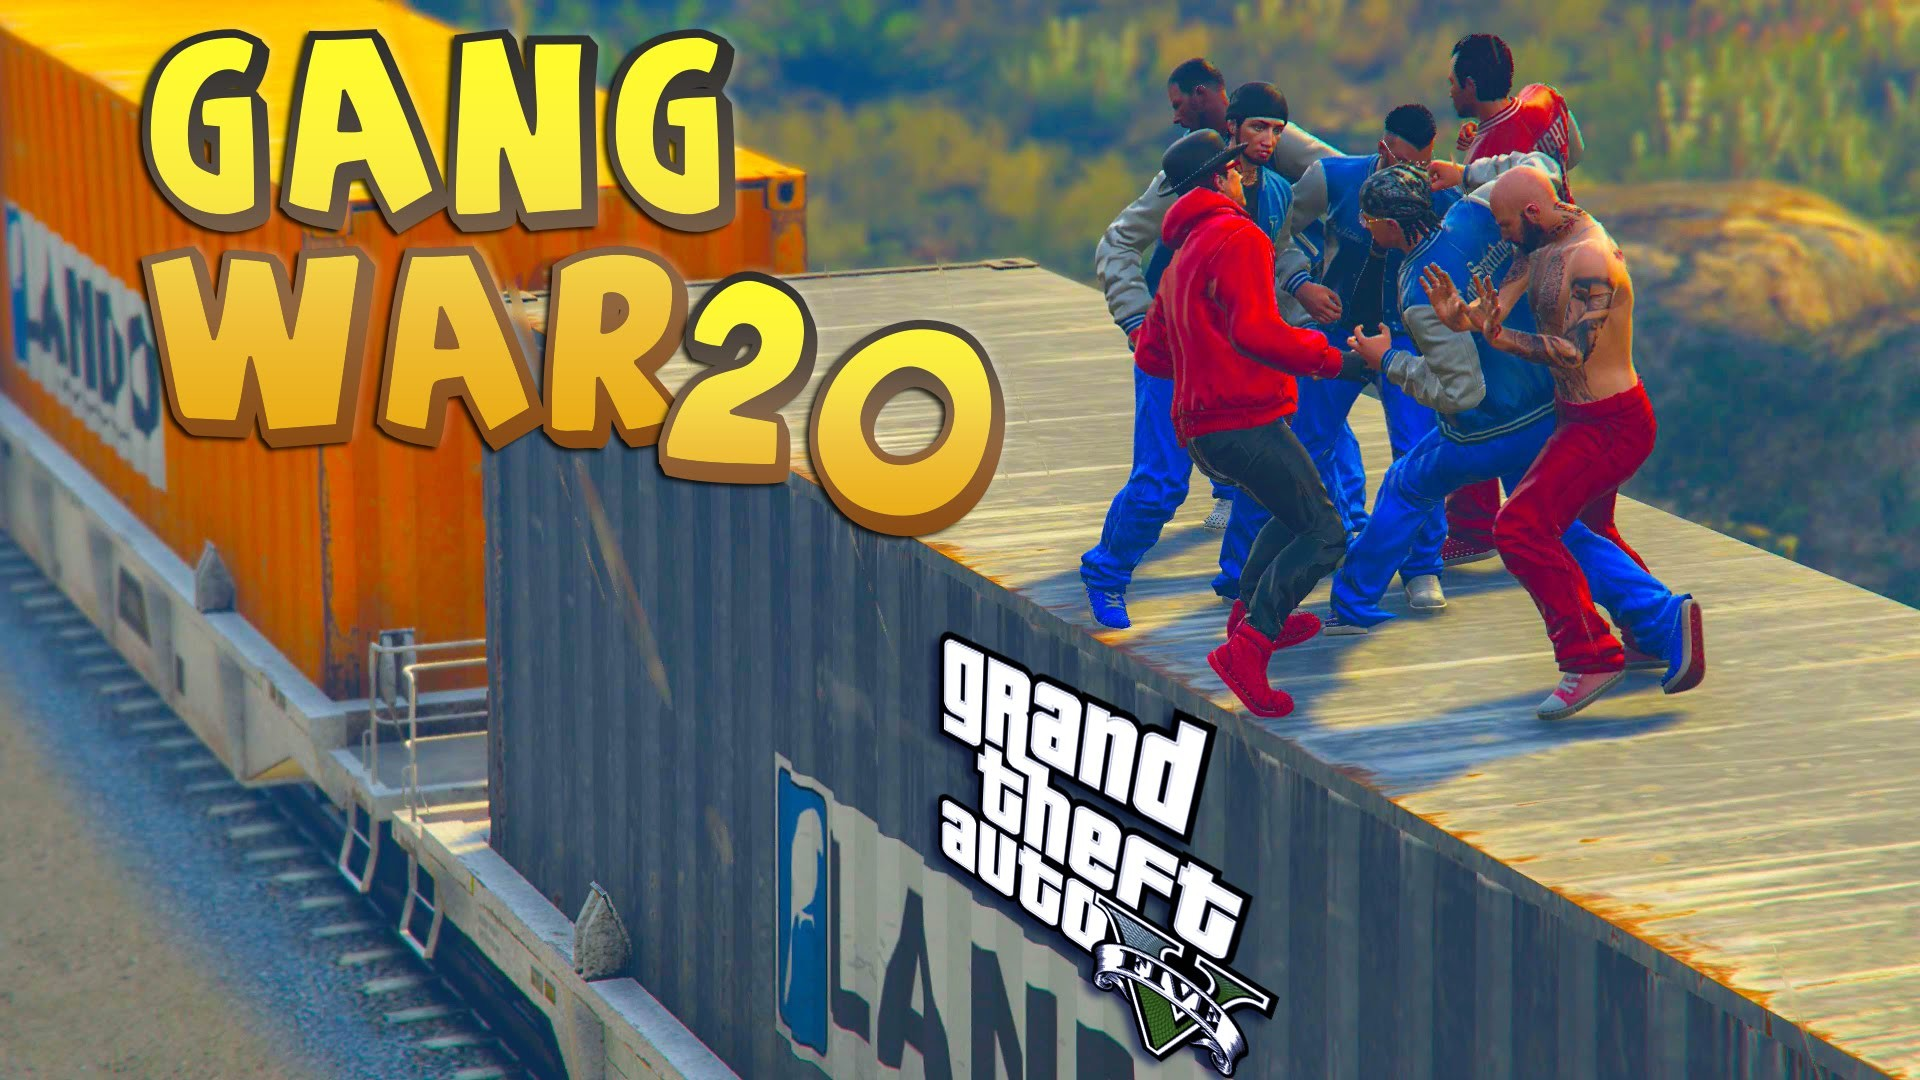 1920x1080 GTA 5 THUG LIFE #20 - GANG WAR BLOOD VS CRIPS SEASON FINALE | S2 - YouTube